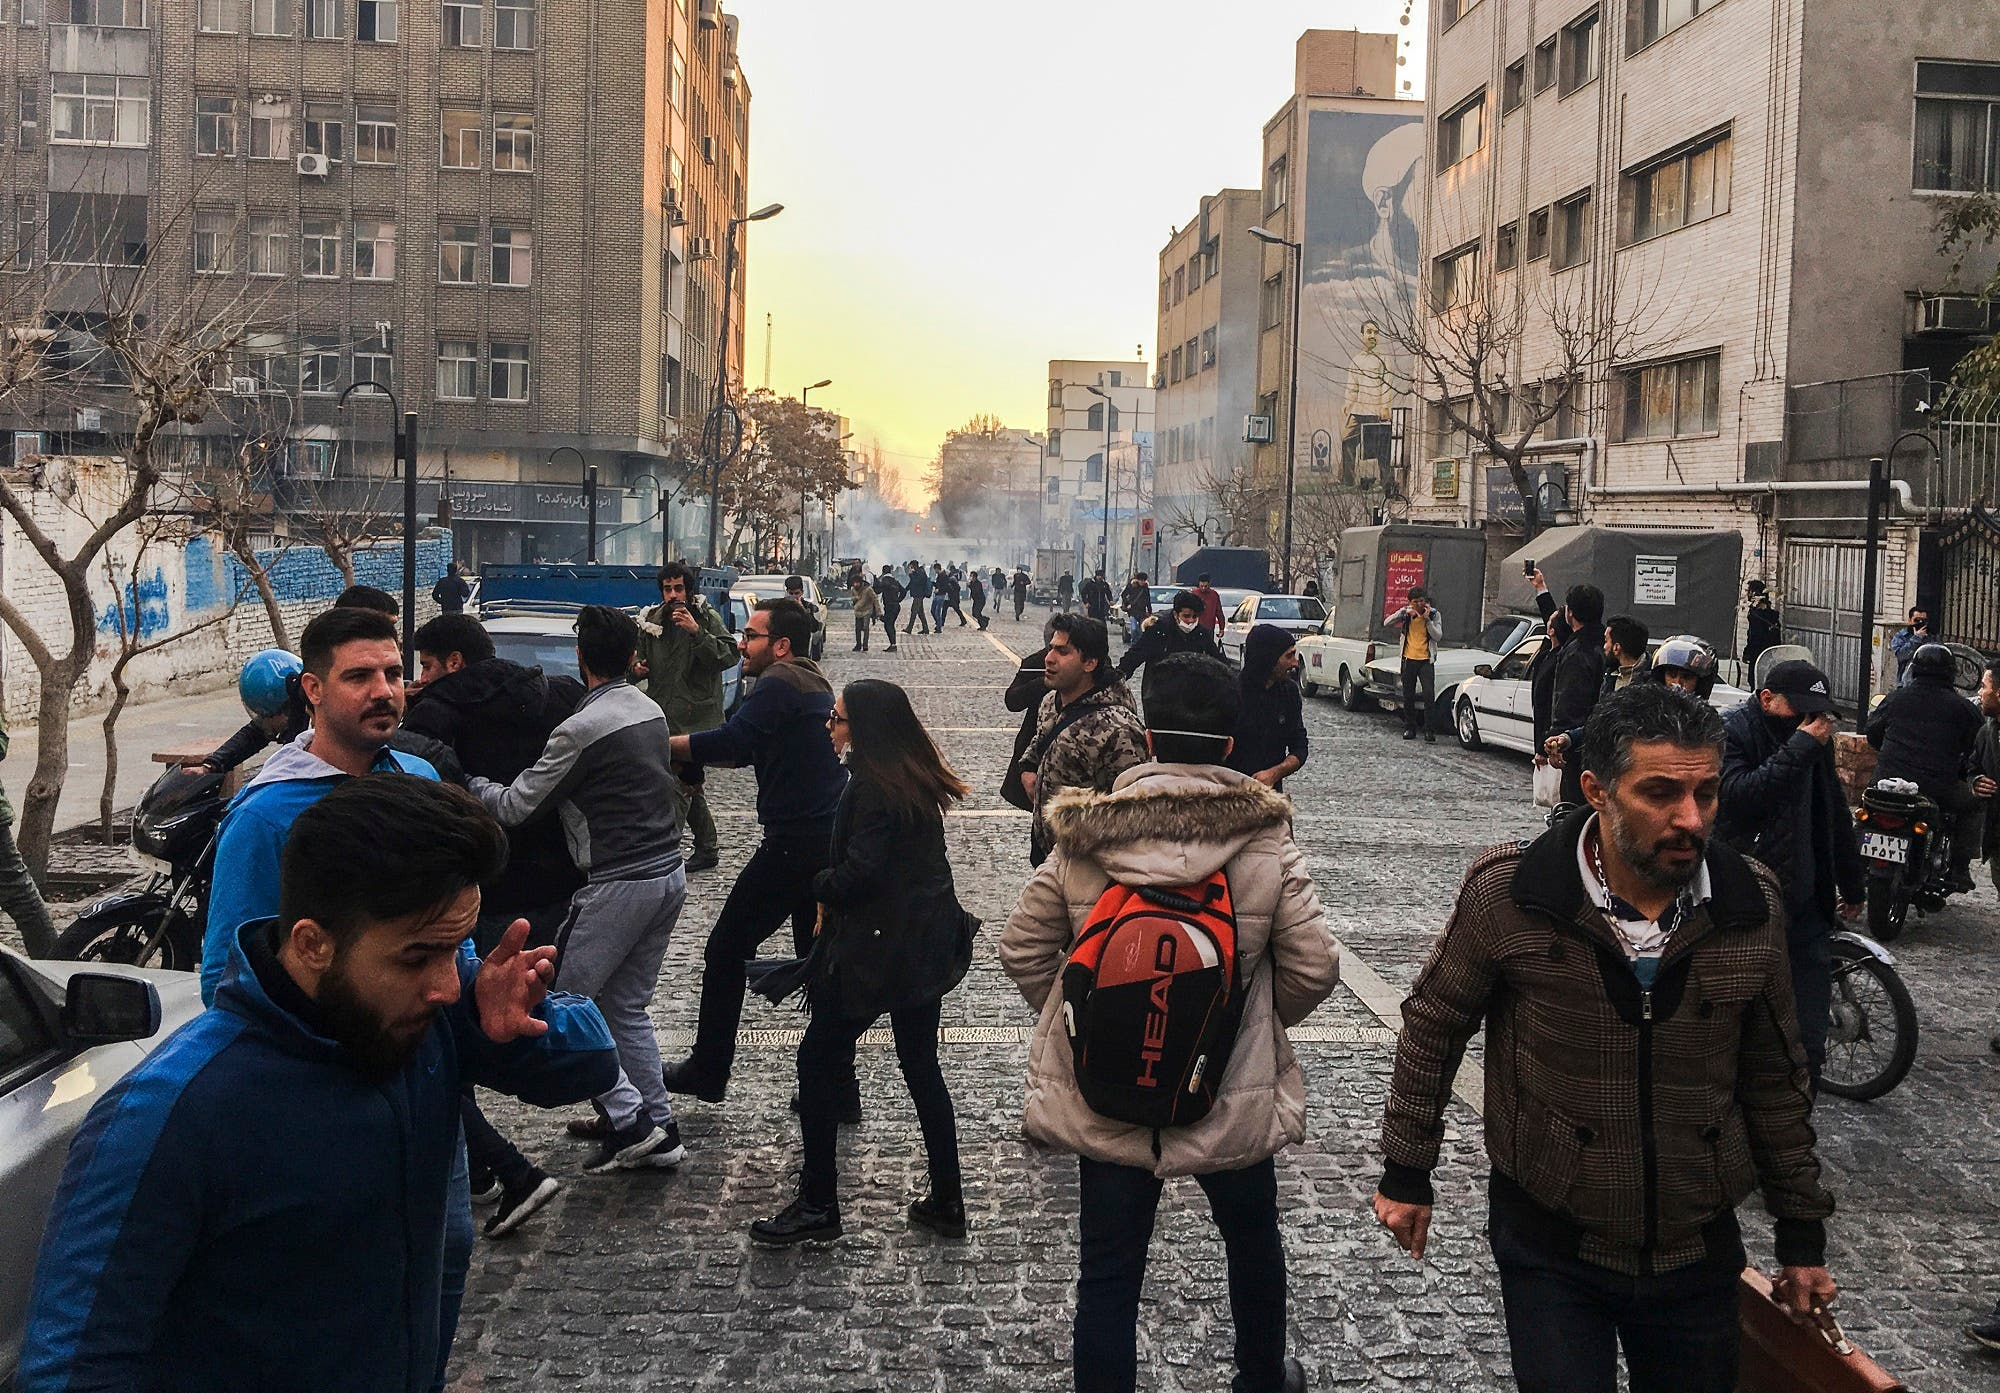 People are affected by tear gas fired by anti-riot Iranian police to disperse demonstrators in a protest in Tehran on Saturday, Dec. 30, 2017. (File photo: AP)